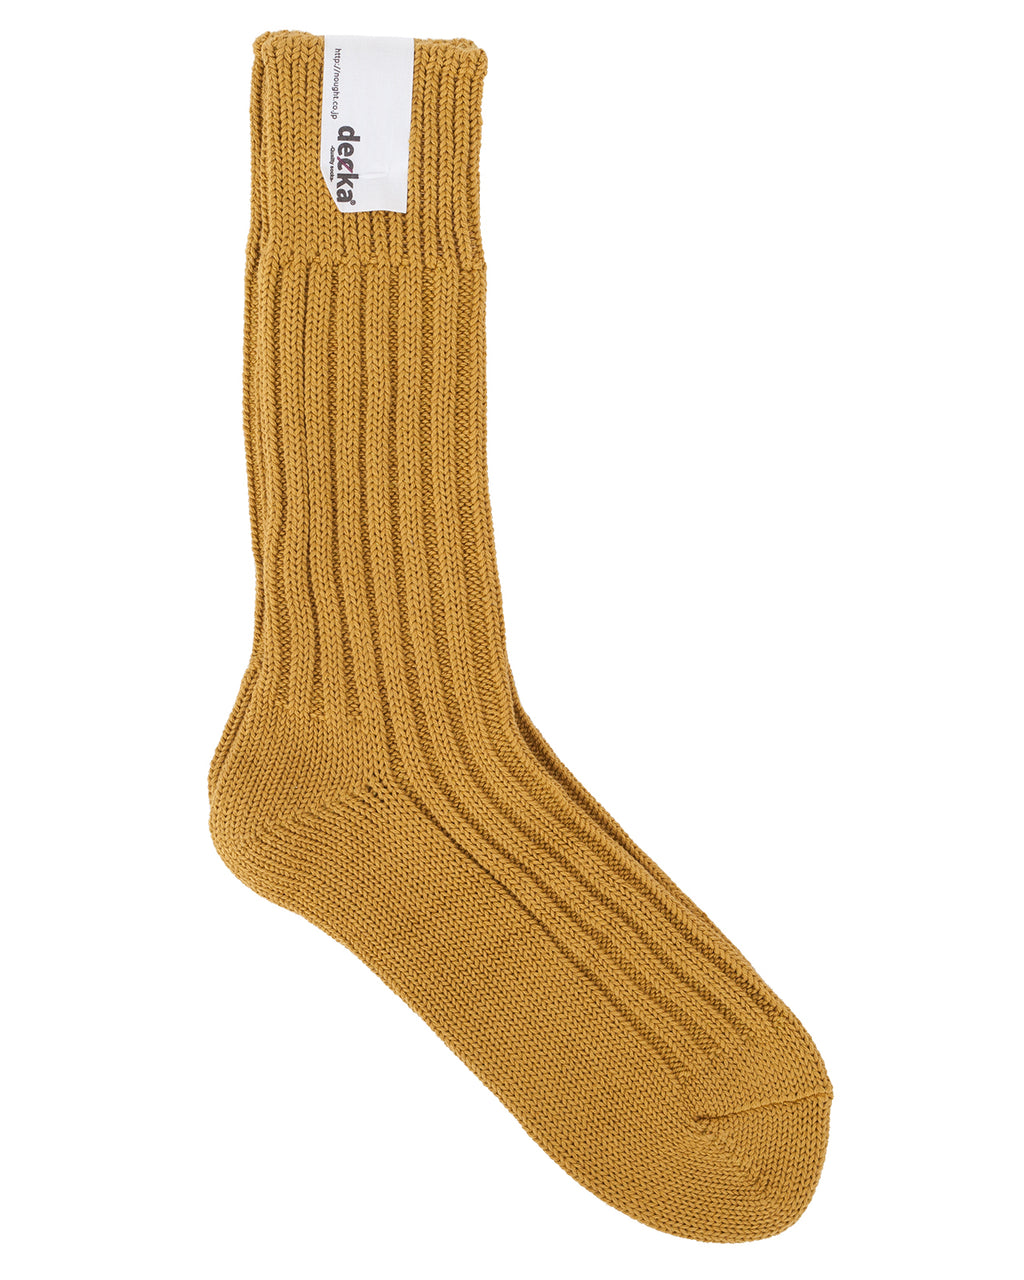 Decka Cased Heavy Weight Plain Socks, Yellow